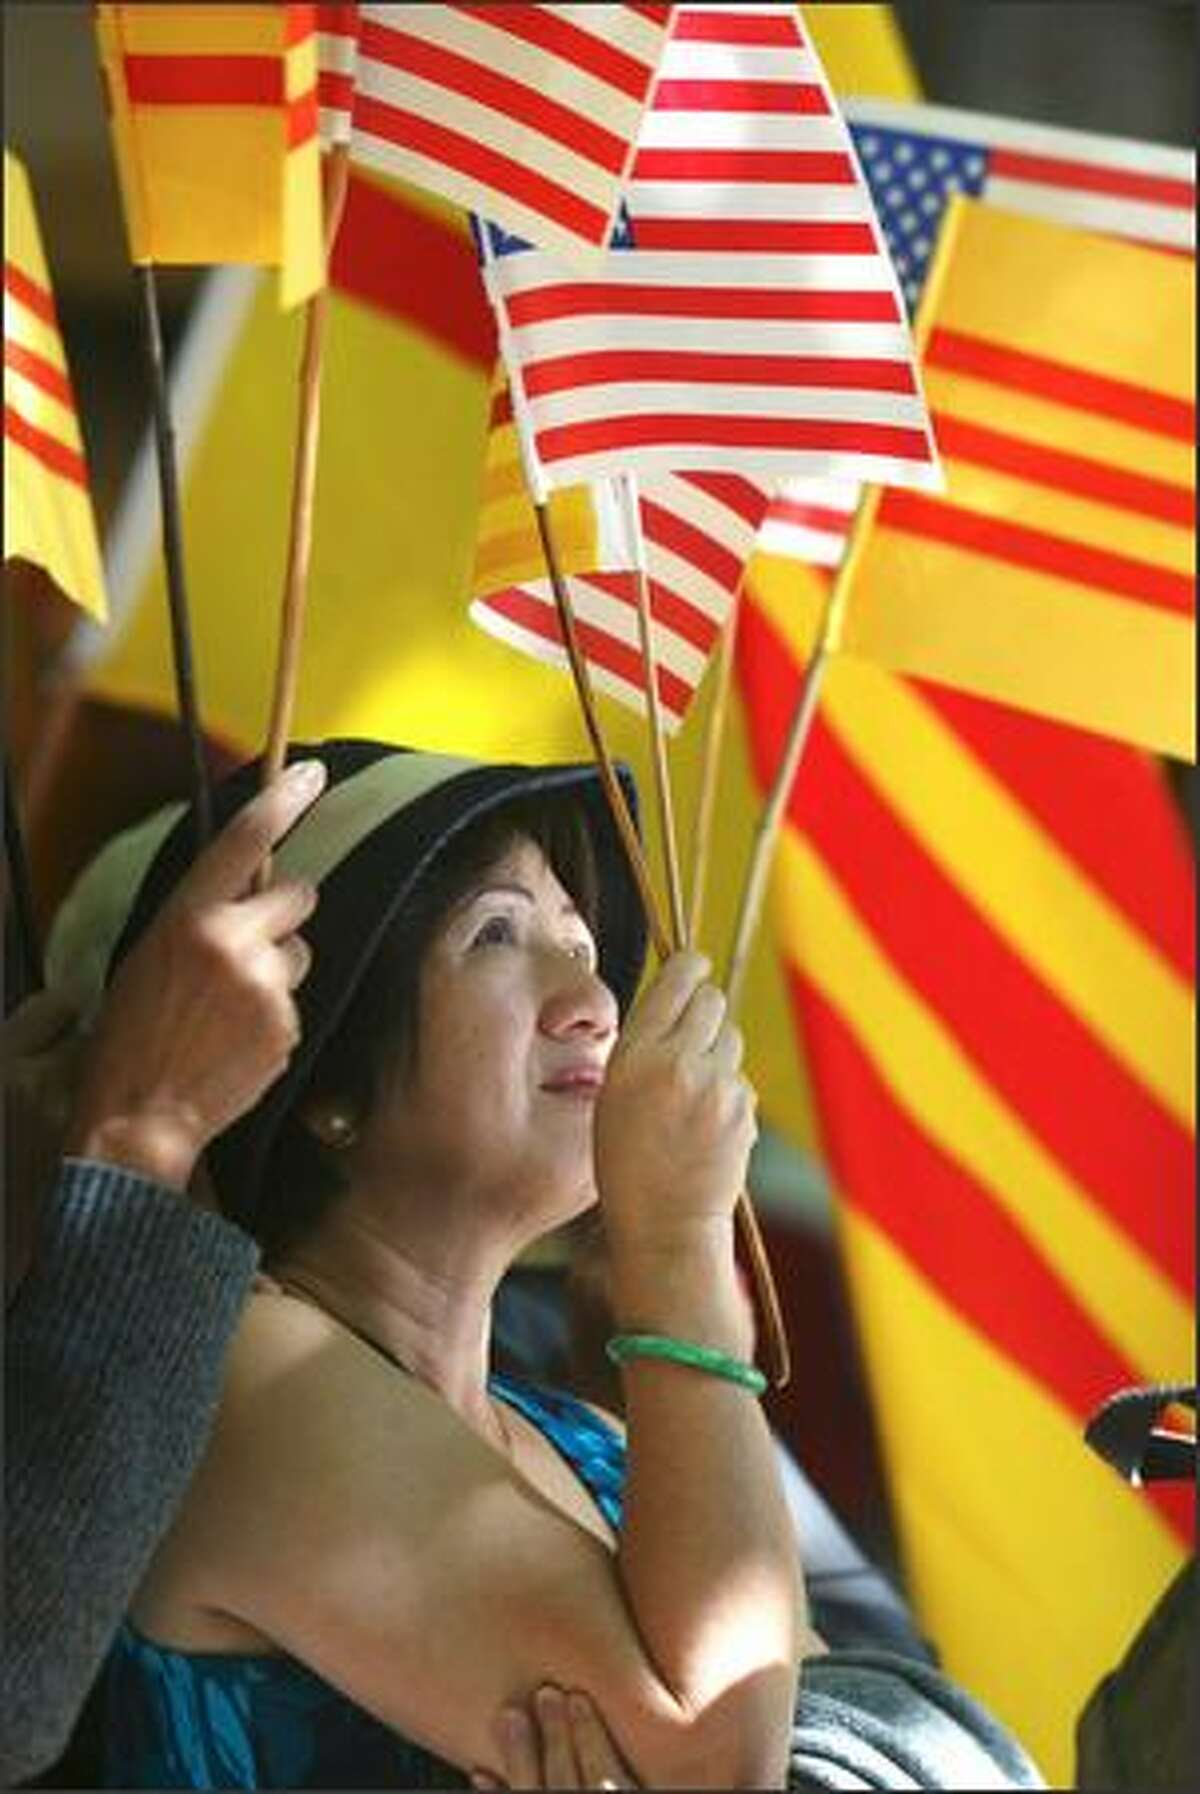 Pre-1975 South Vietnamese flags frame Tam Cong Huyen during protests at the Fairmont Olympic Hotel against Vietnam's prime minister.